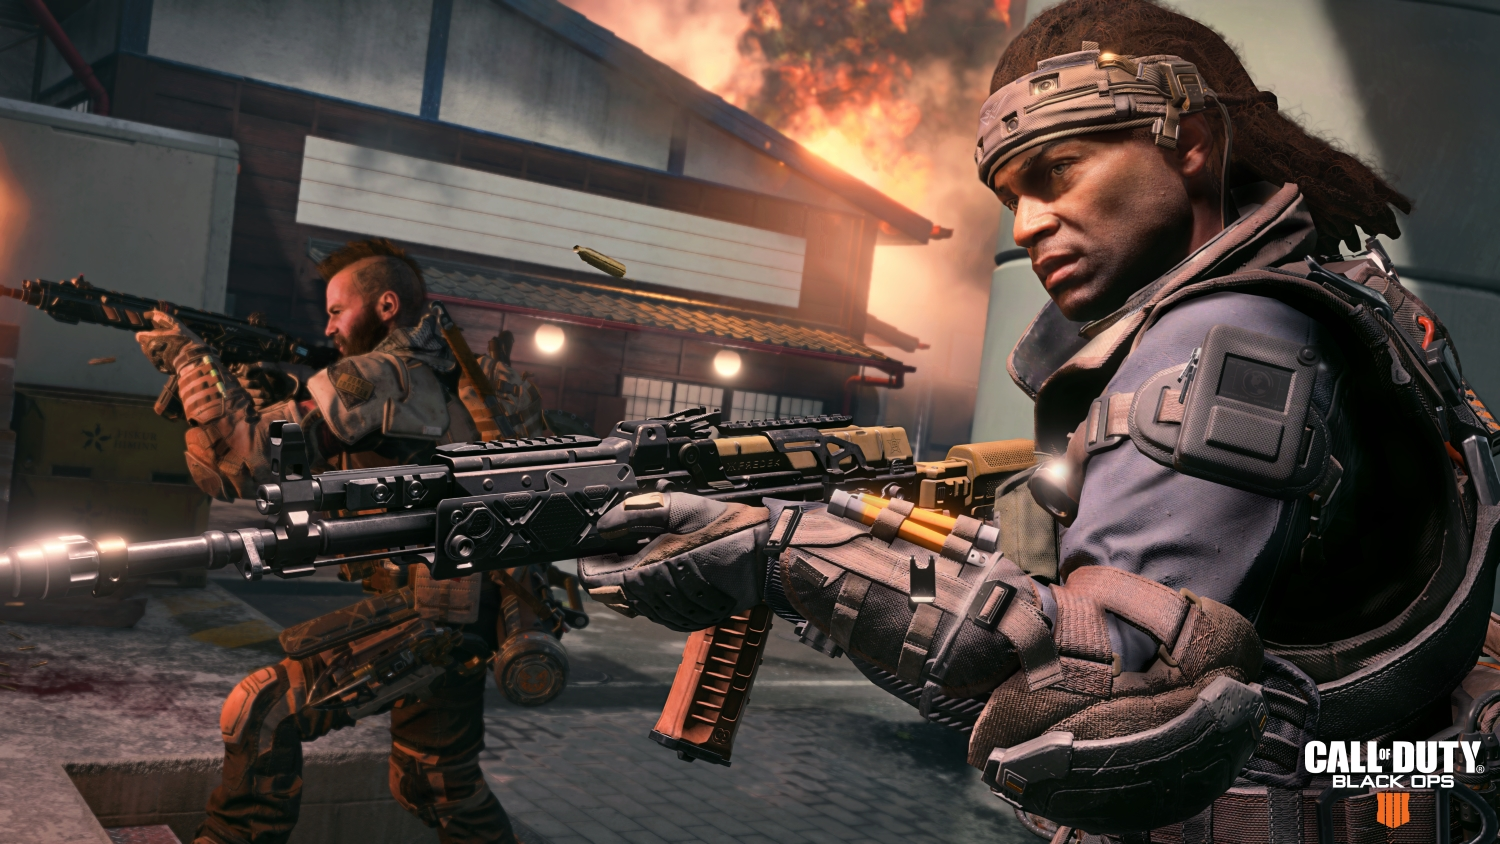 Call Of Duty: Black Ops 4 campaign mode was going to be 2v2 co-op race